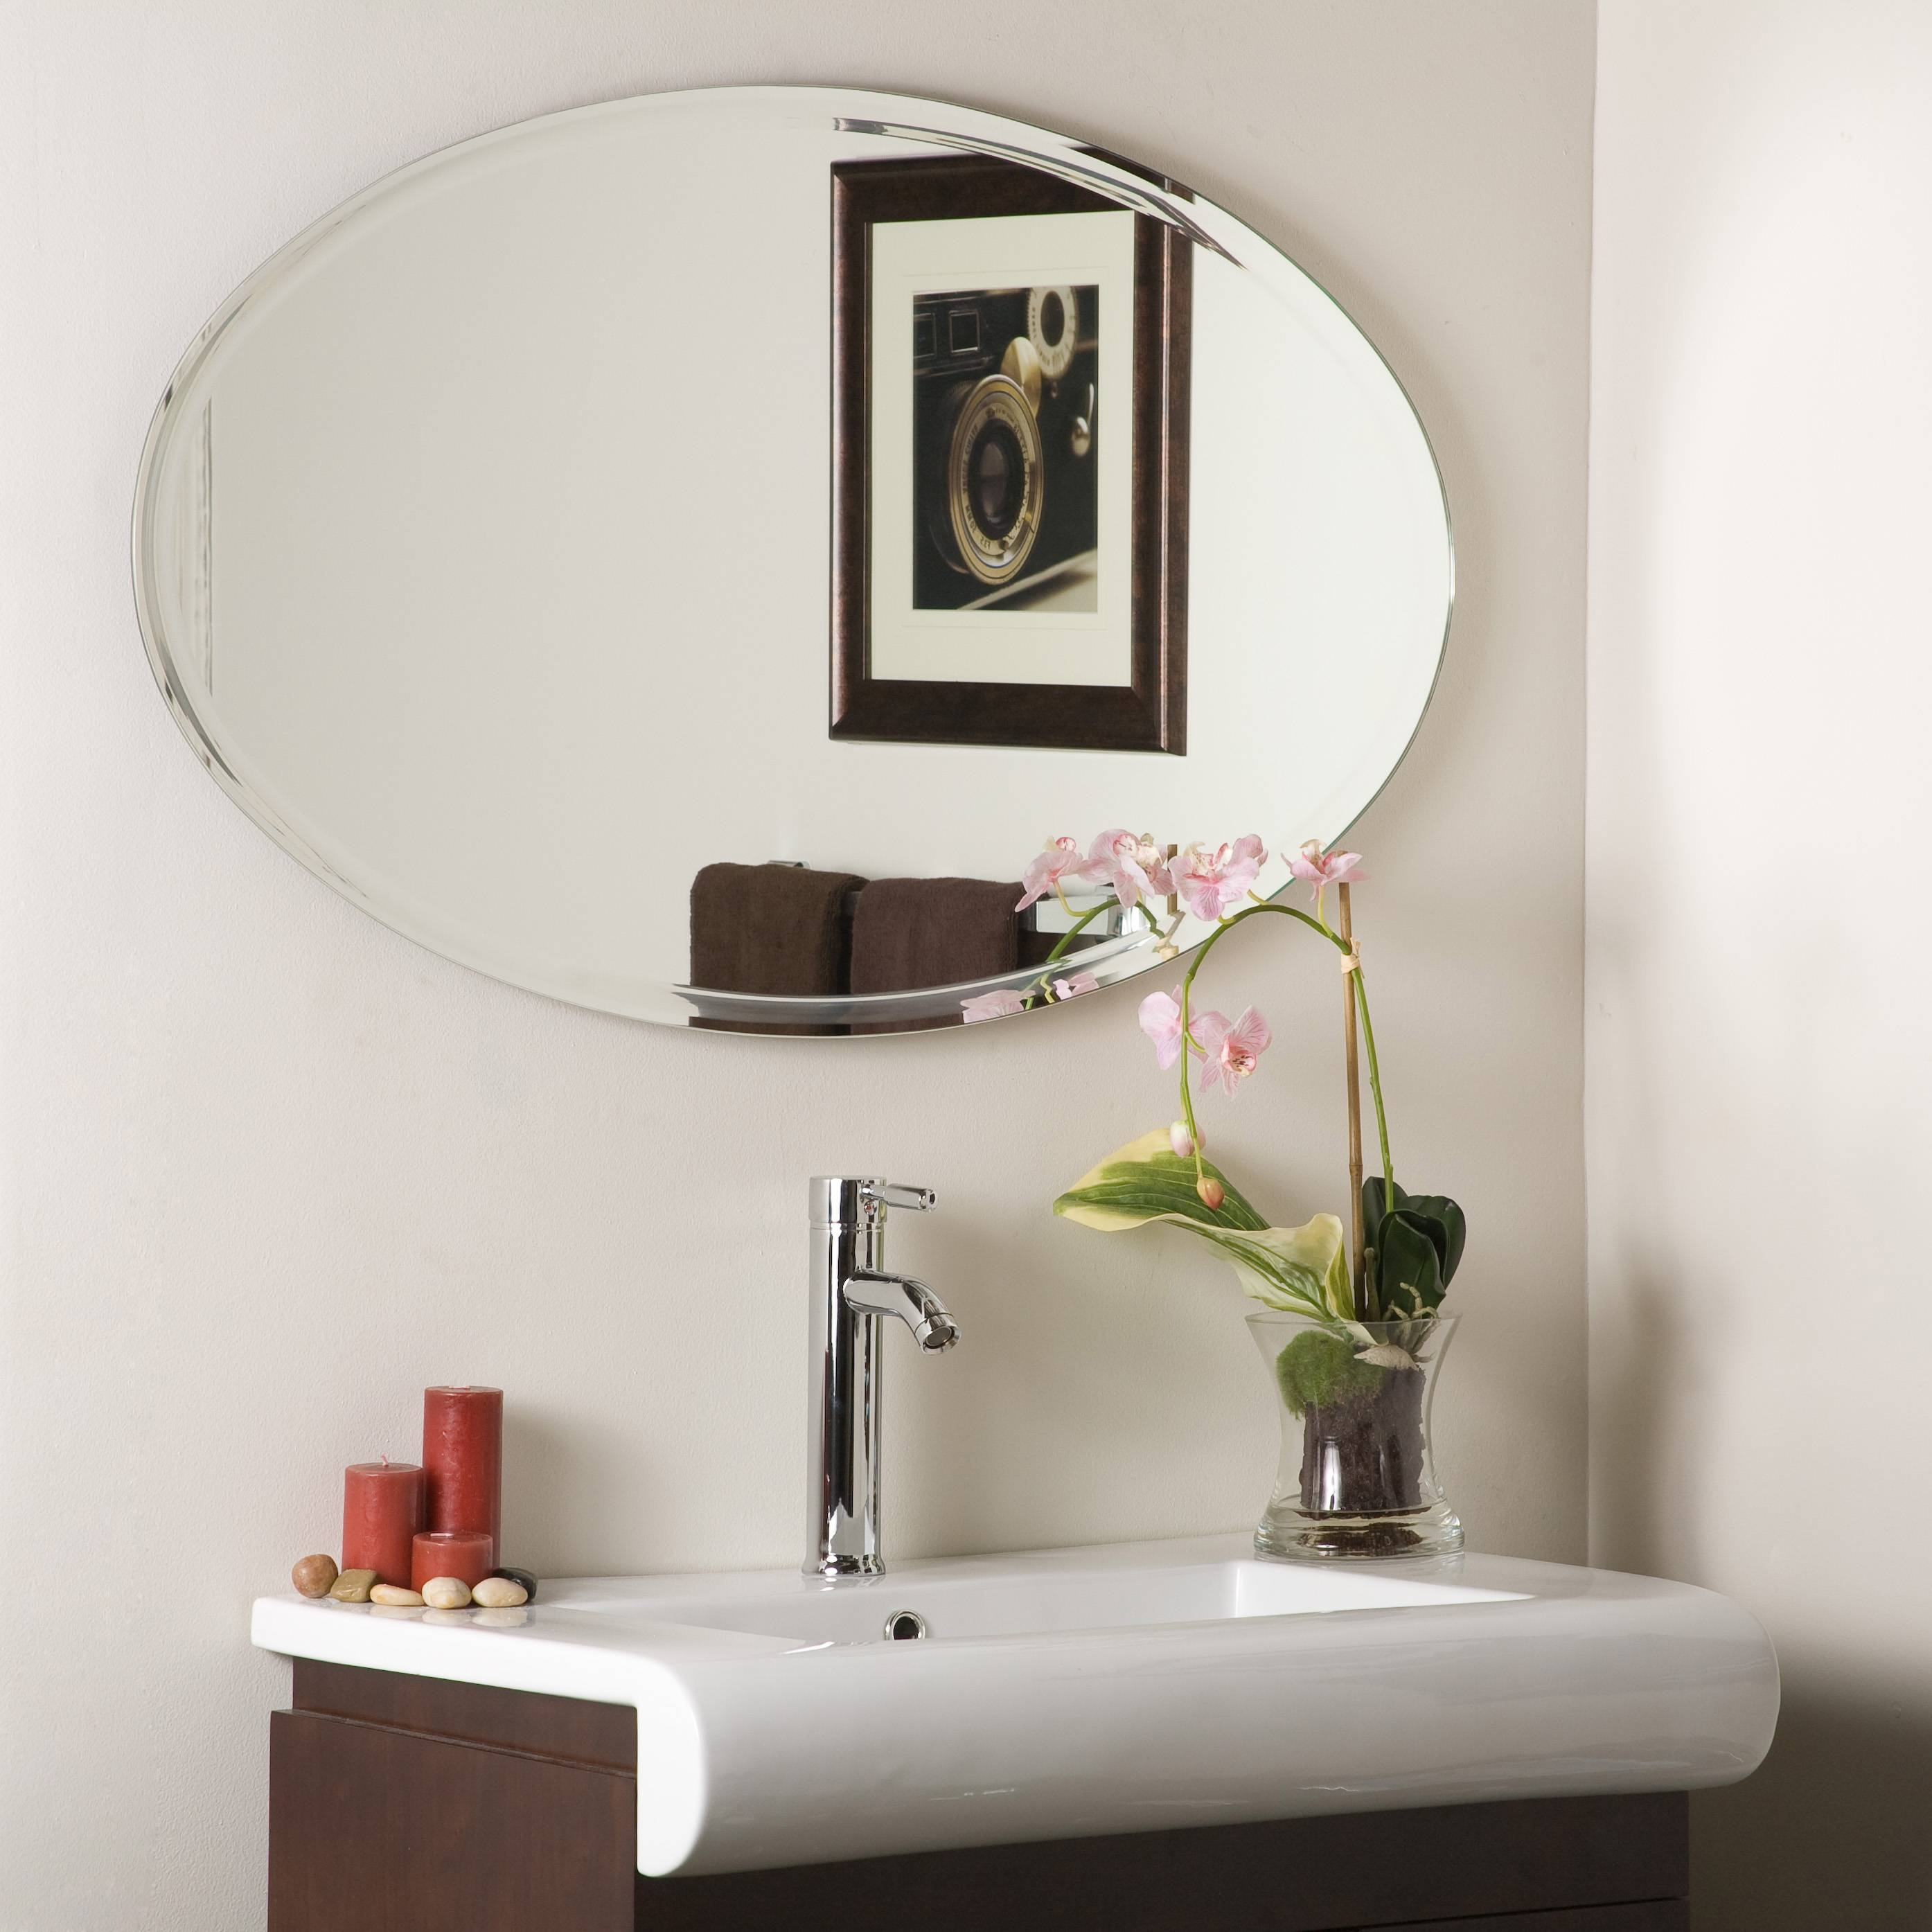 Decor Wonderland Extra Long Oval Wall Mirror – Beyond Stores In Oval Wall Mirrors (View 6 of 25)